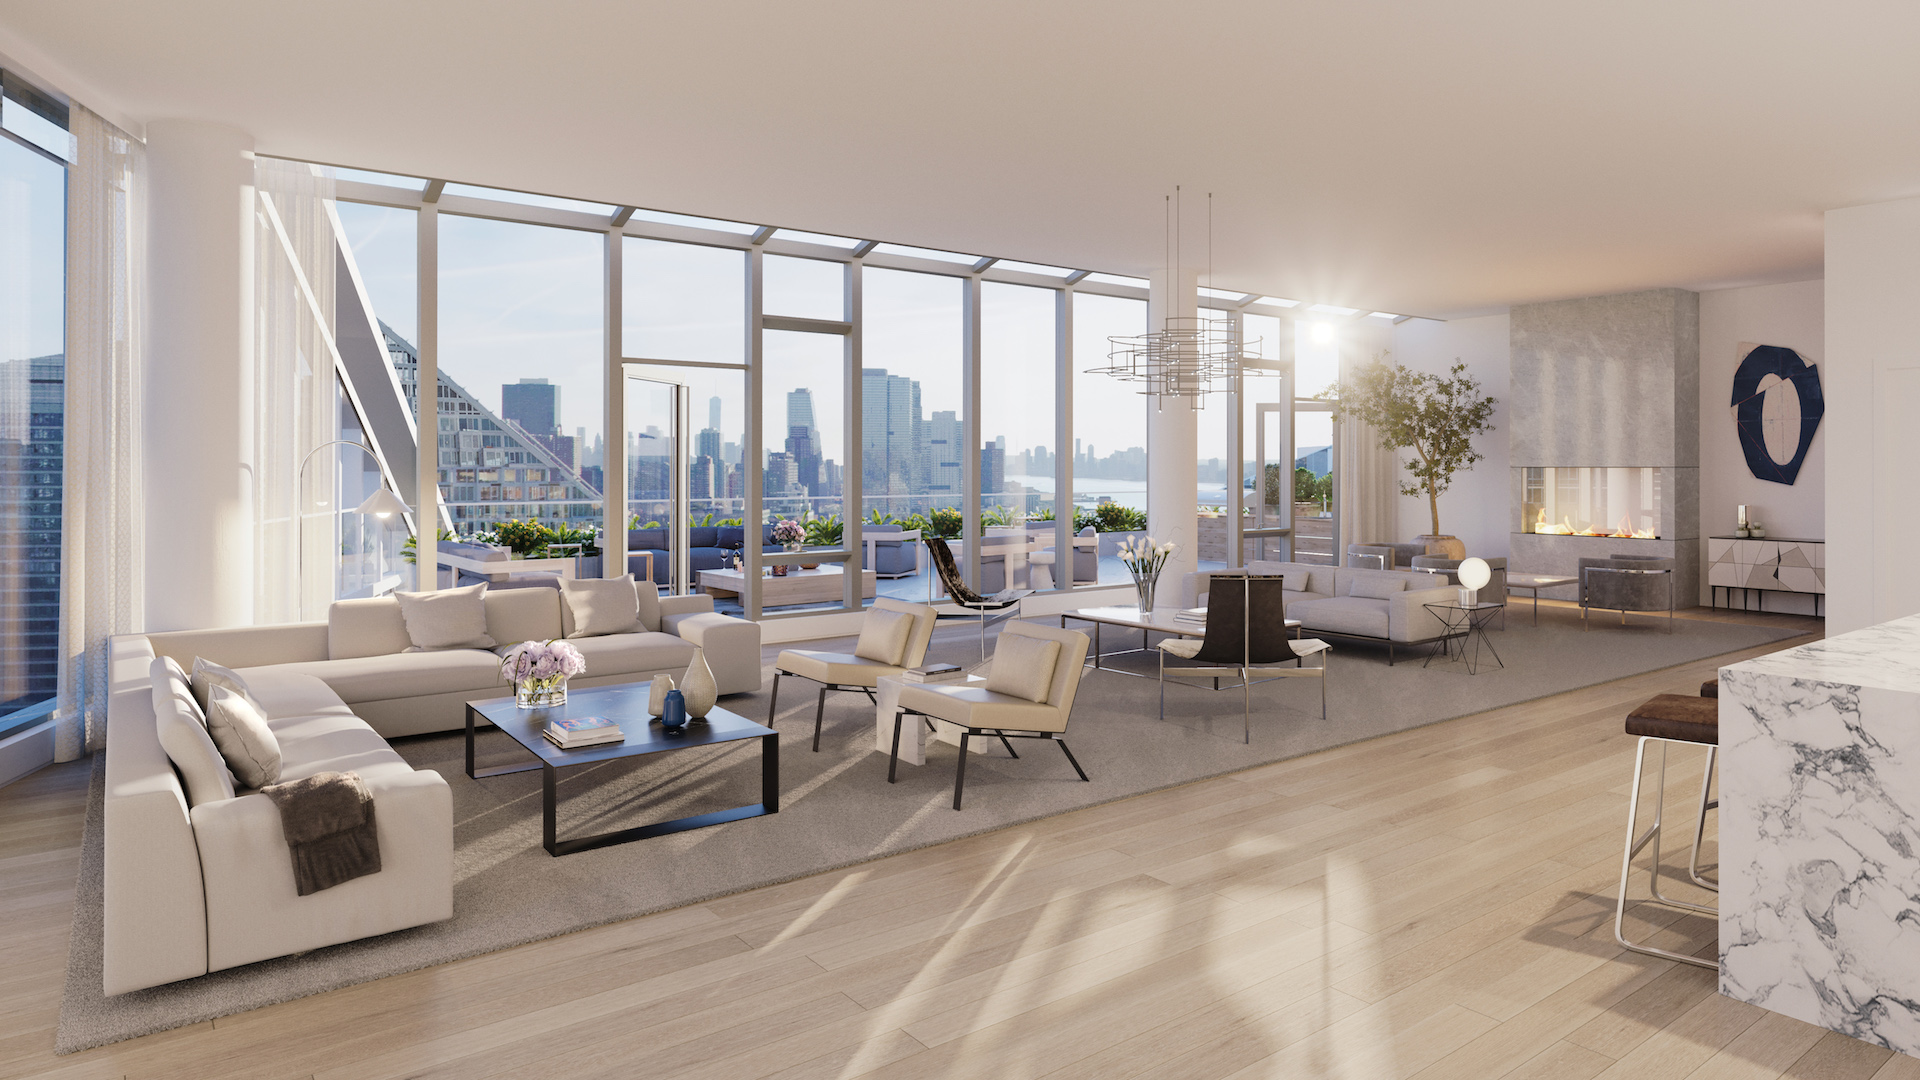 Waterline Square Penthouse in New York City Living Room